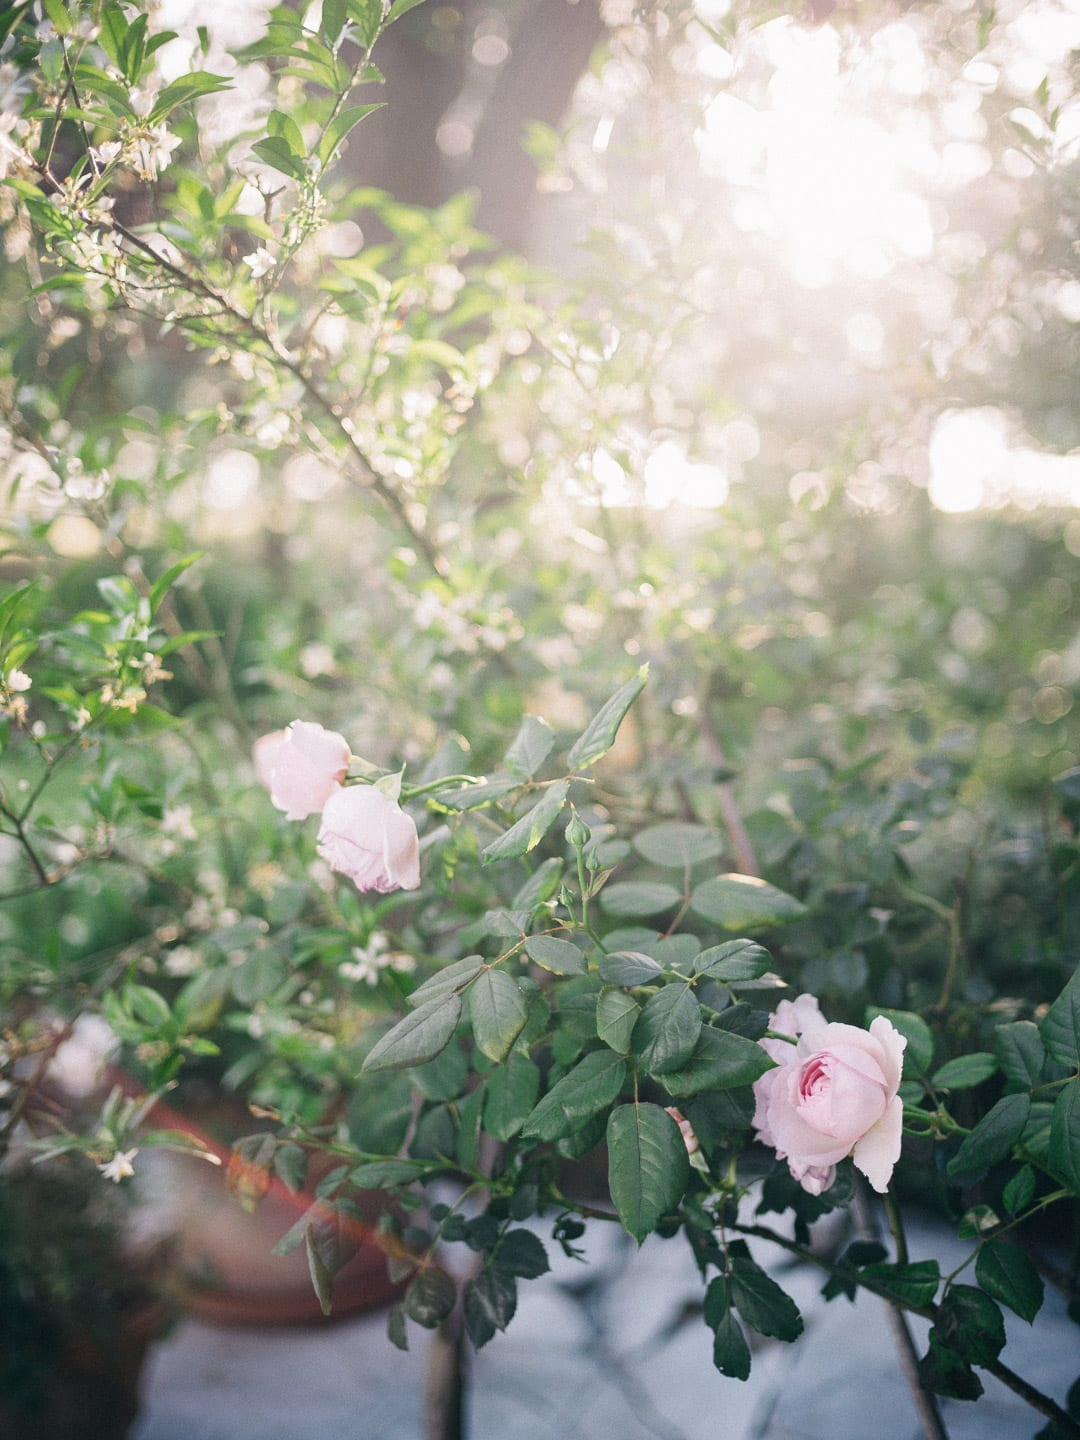 Pink roses in a French garden with the sun setting behind - First Glimpse of France